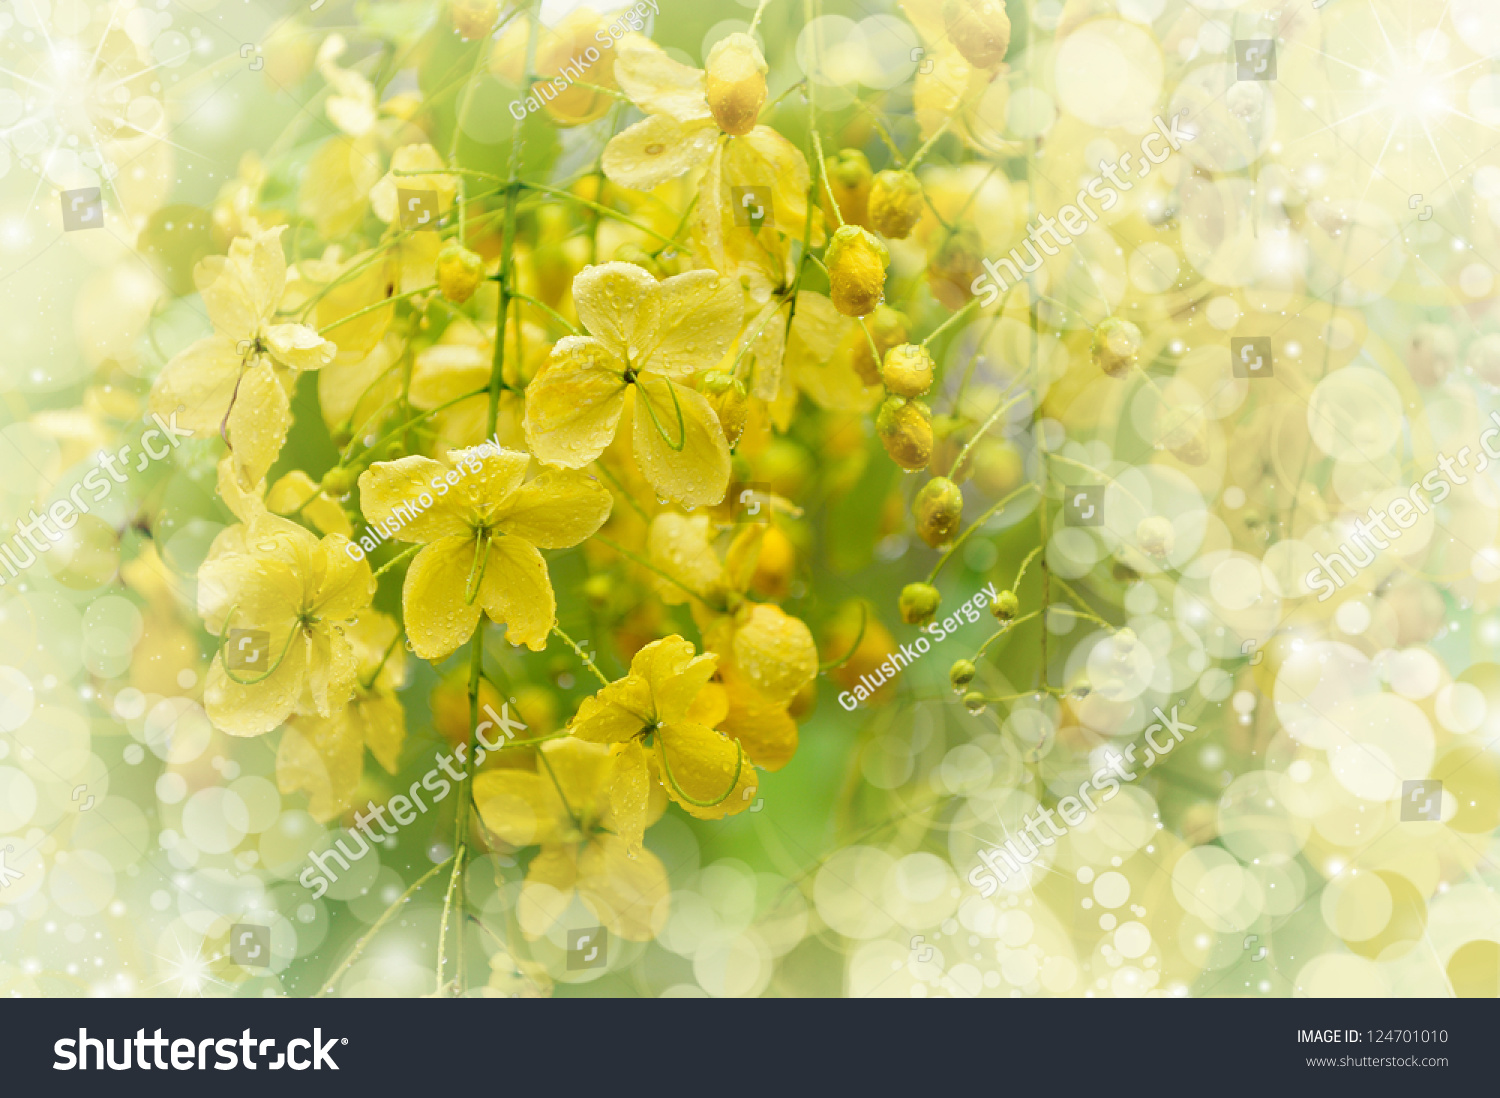 Flowering Tree Blooming Yellow Flowers Dewdrops Stock Photo Royalty